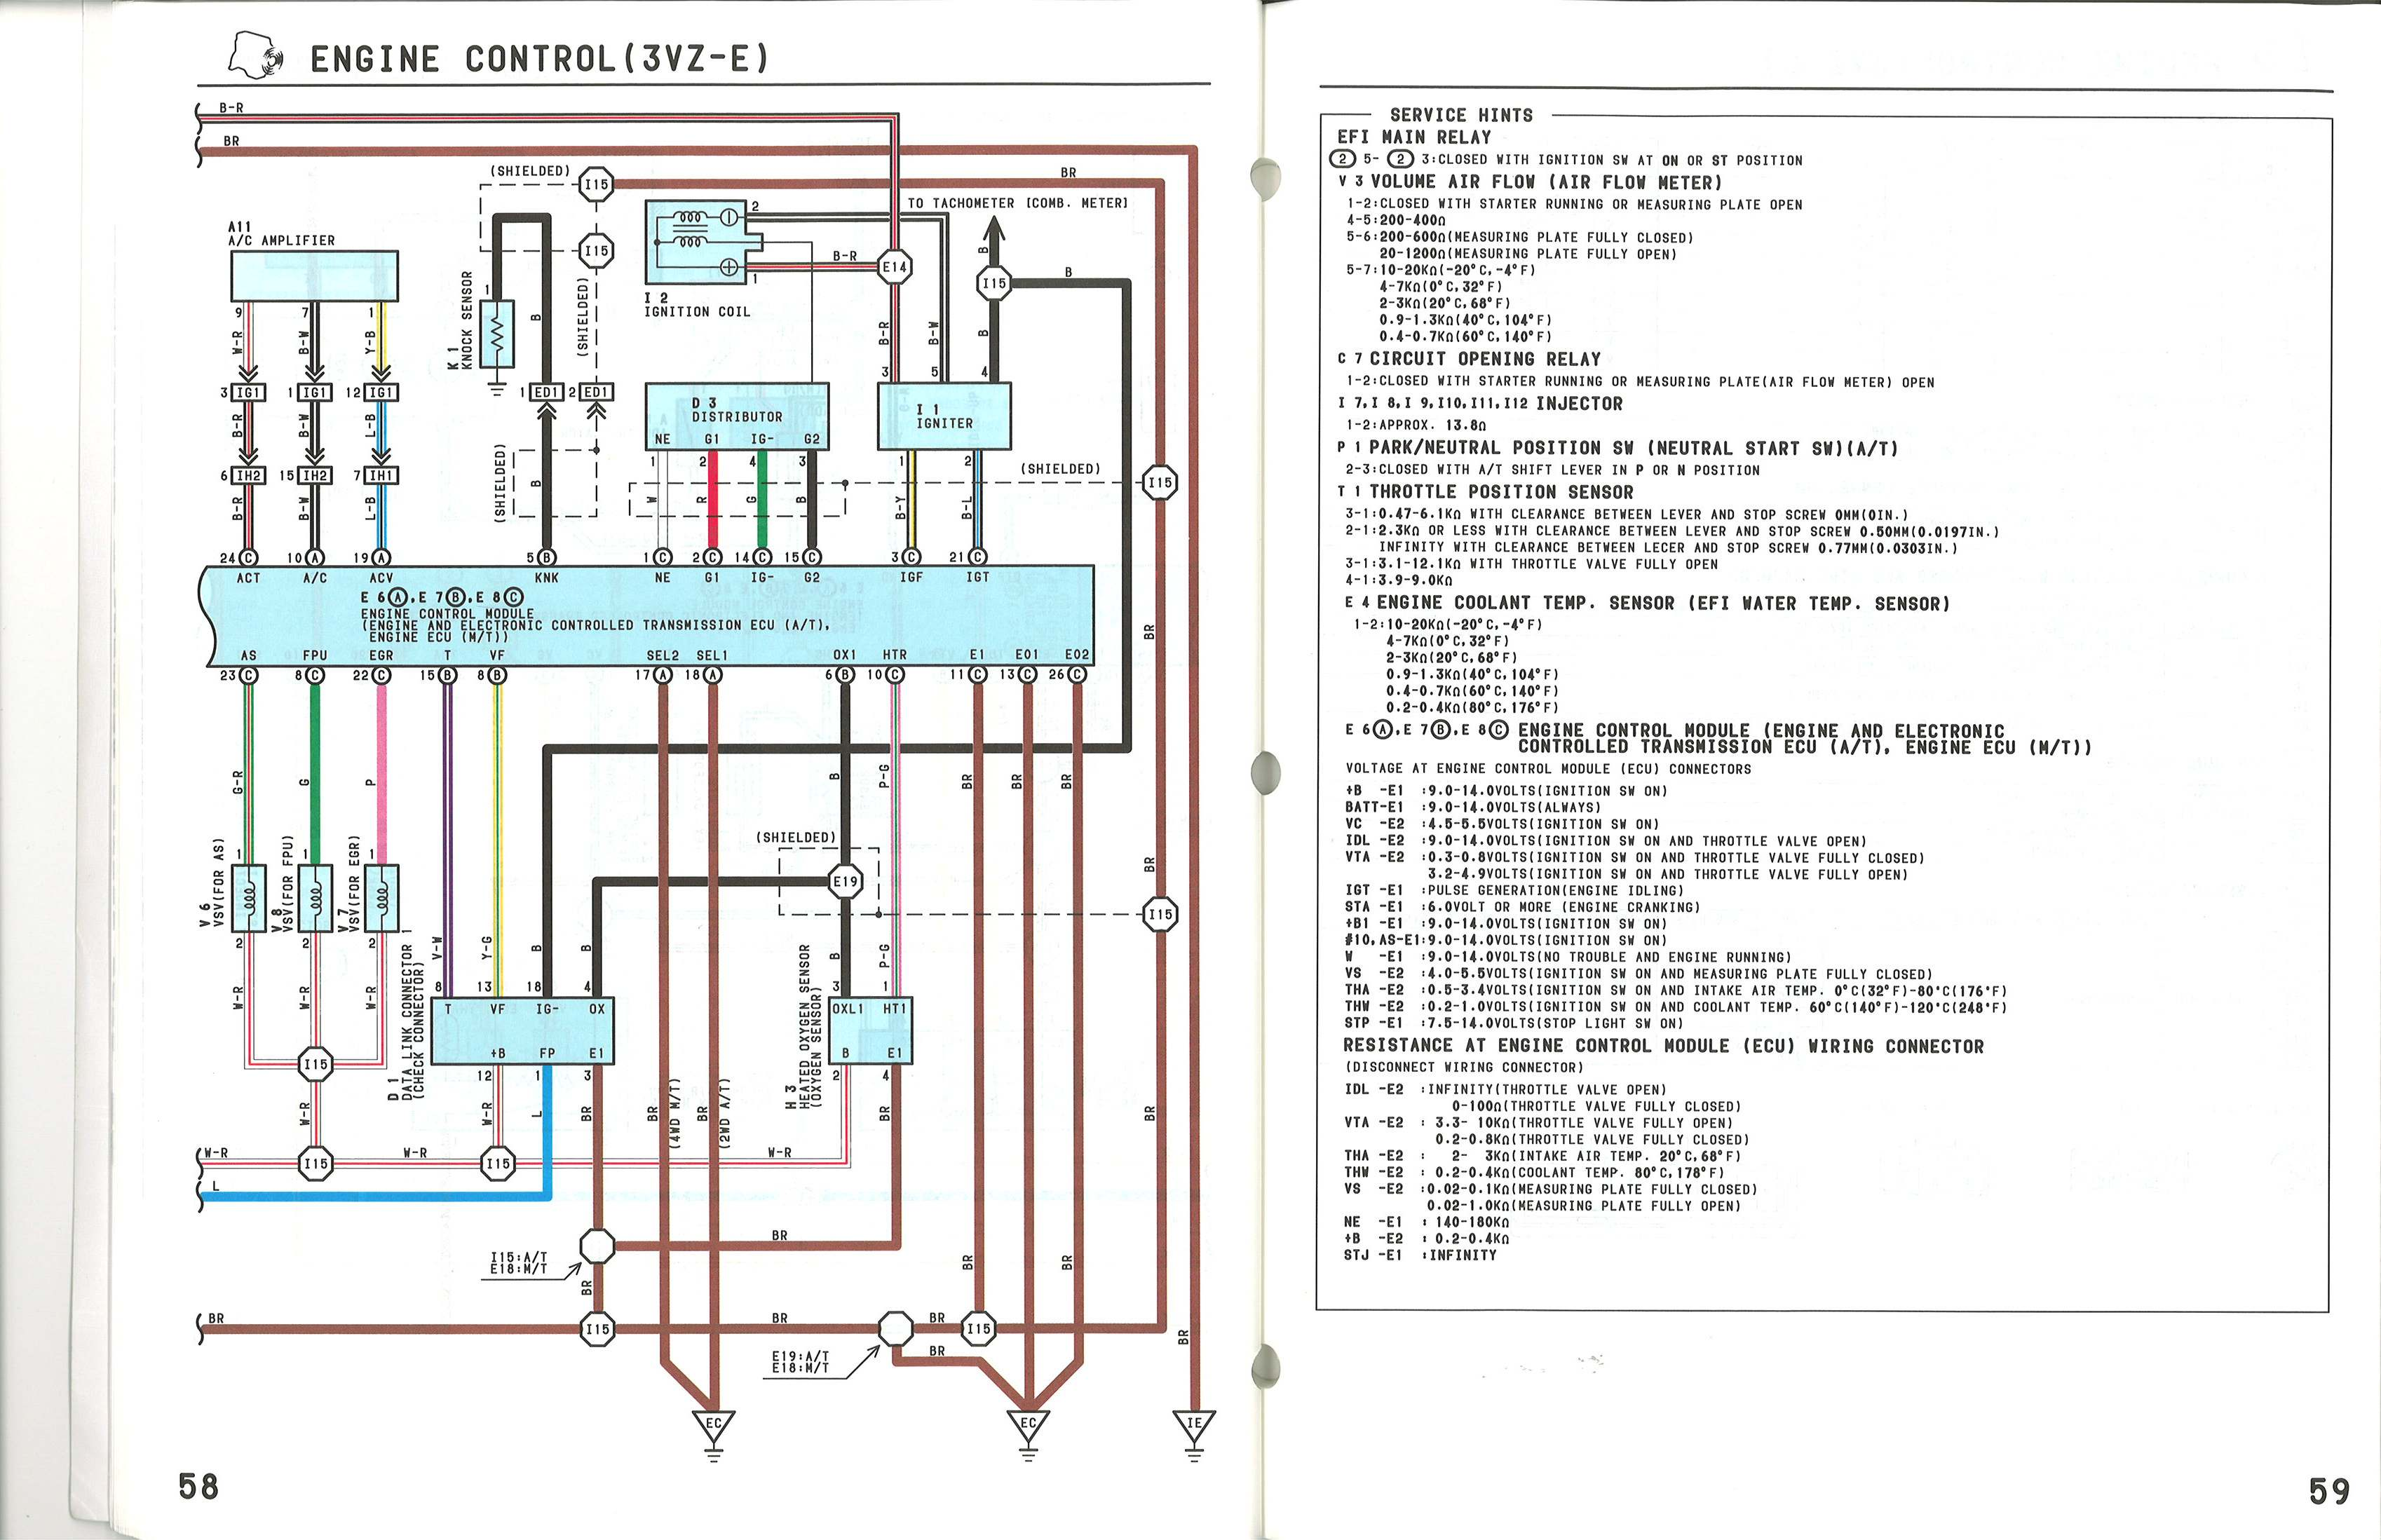 89 4runner wiring diagram wiring schematics diagram rh enr green com 1985 Toyota Pickup 22R Engine Toyota Pickup 22RE Engine Diagram